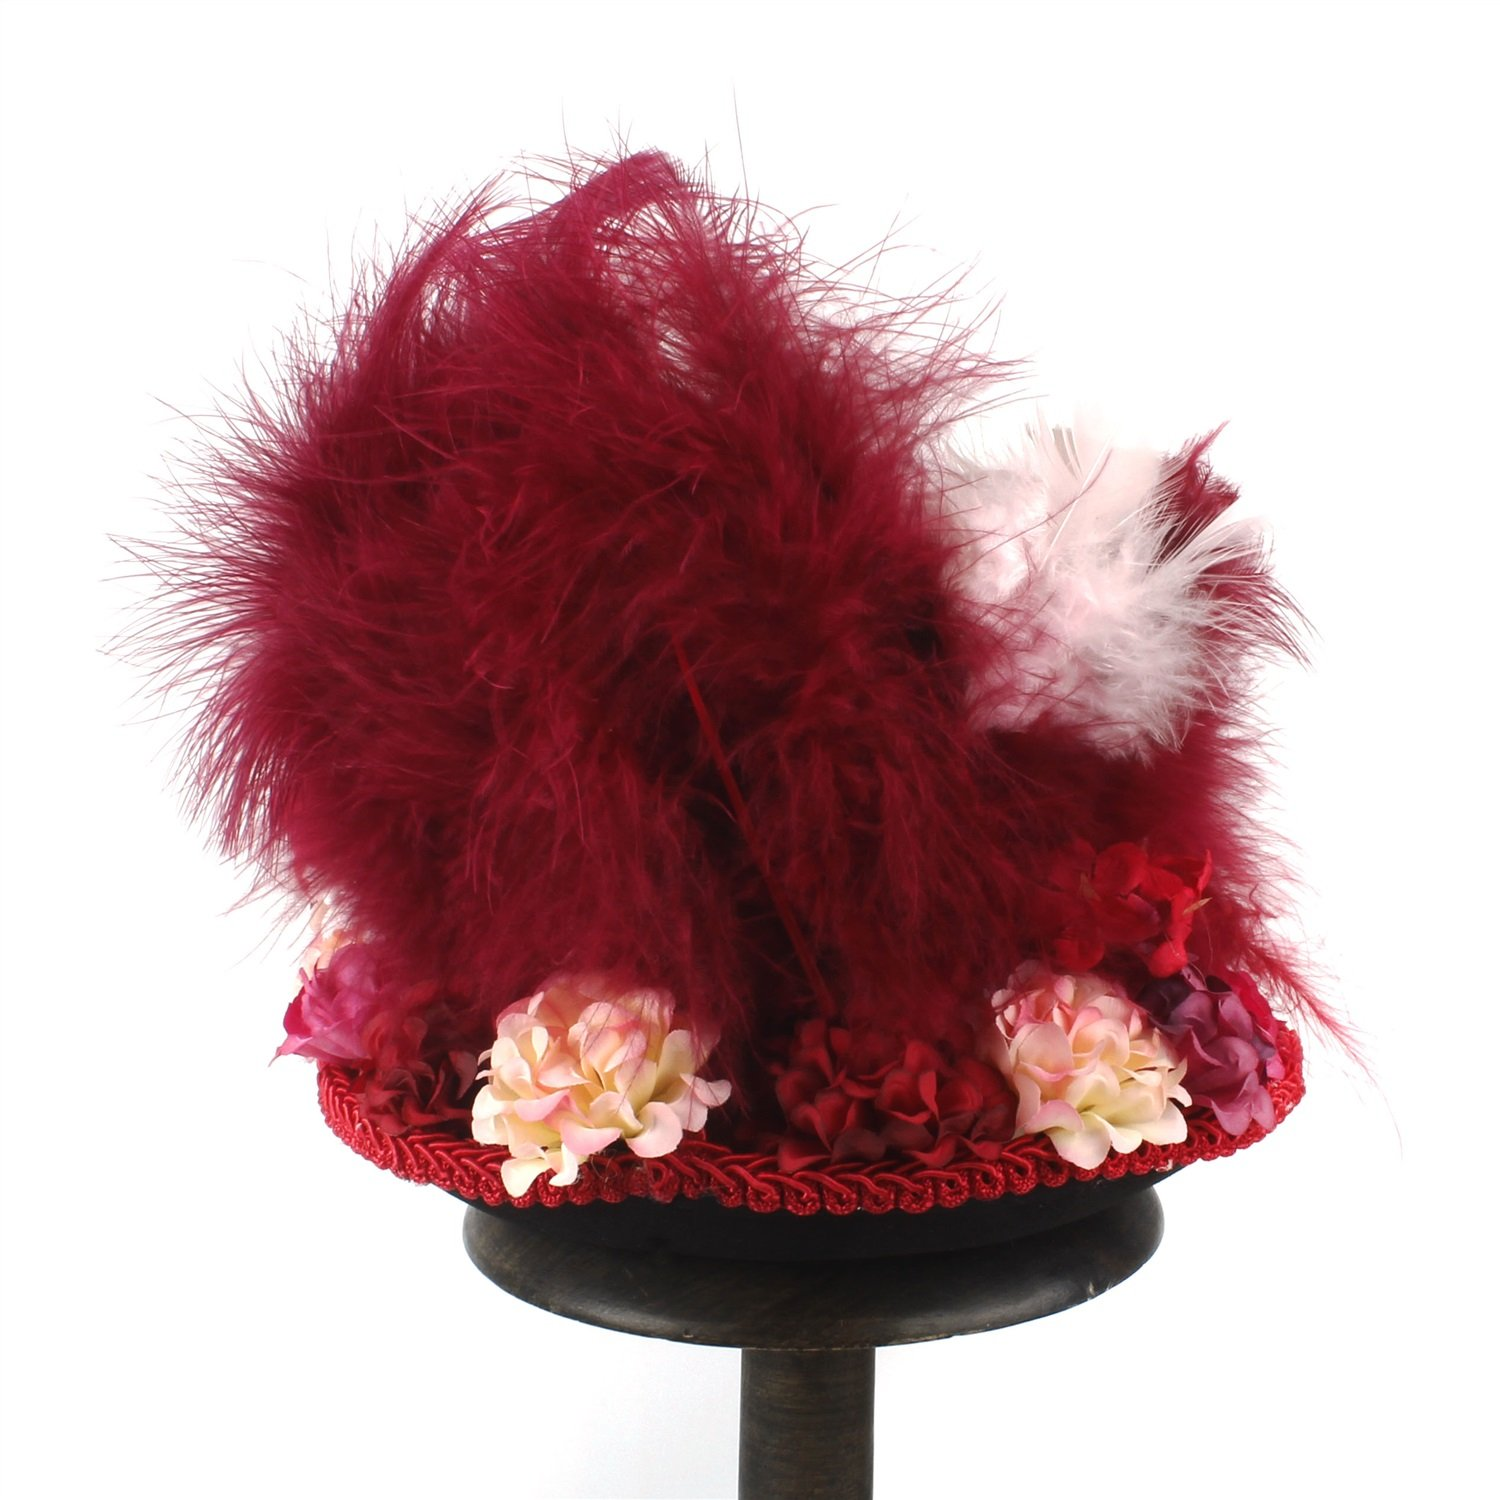 LL Women;s Red Mini Top Hat, Antique Red and Ivory Tea Cup Hat Mad Hatter Hat, Tea Hat,Mad Hatter Tea Party (Color : Red, Size : 25-30cm) by LL (Image #6)